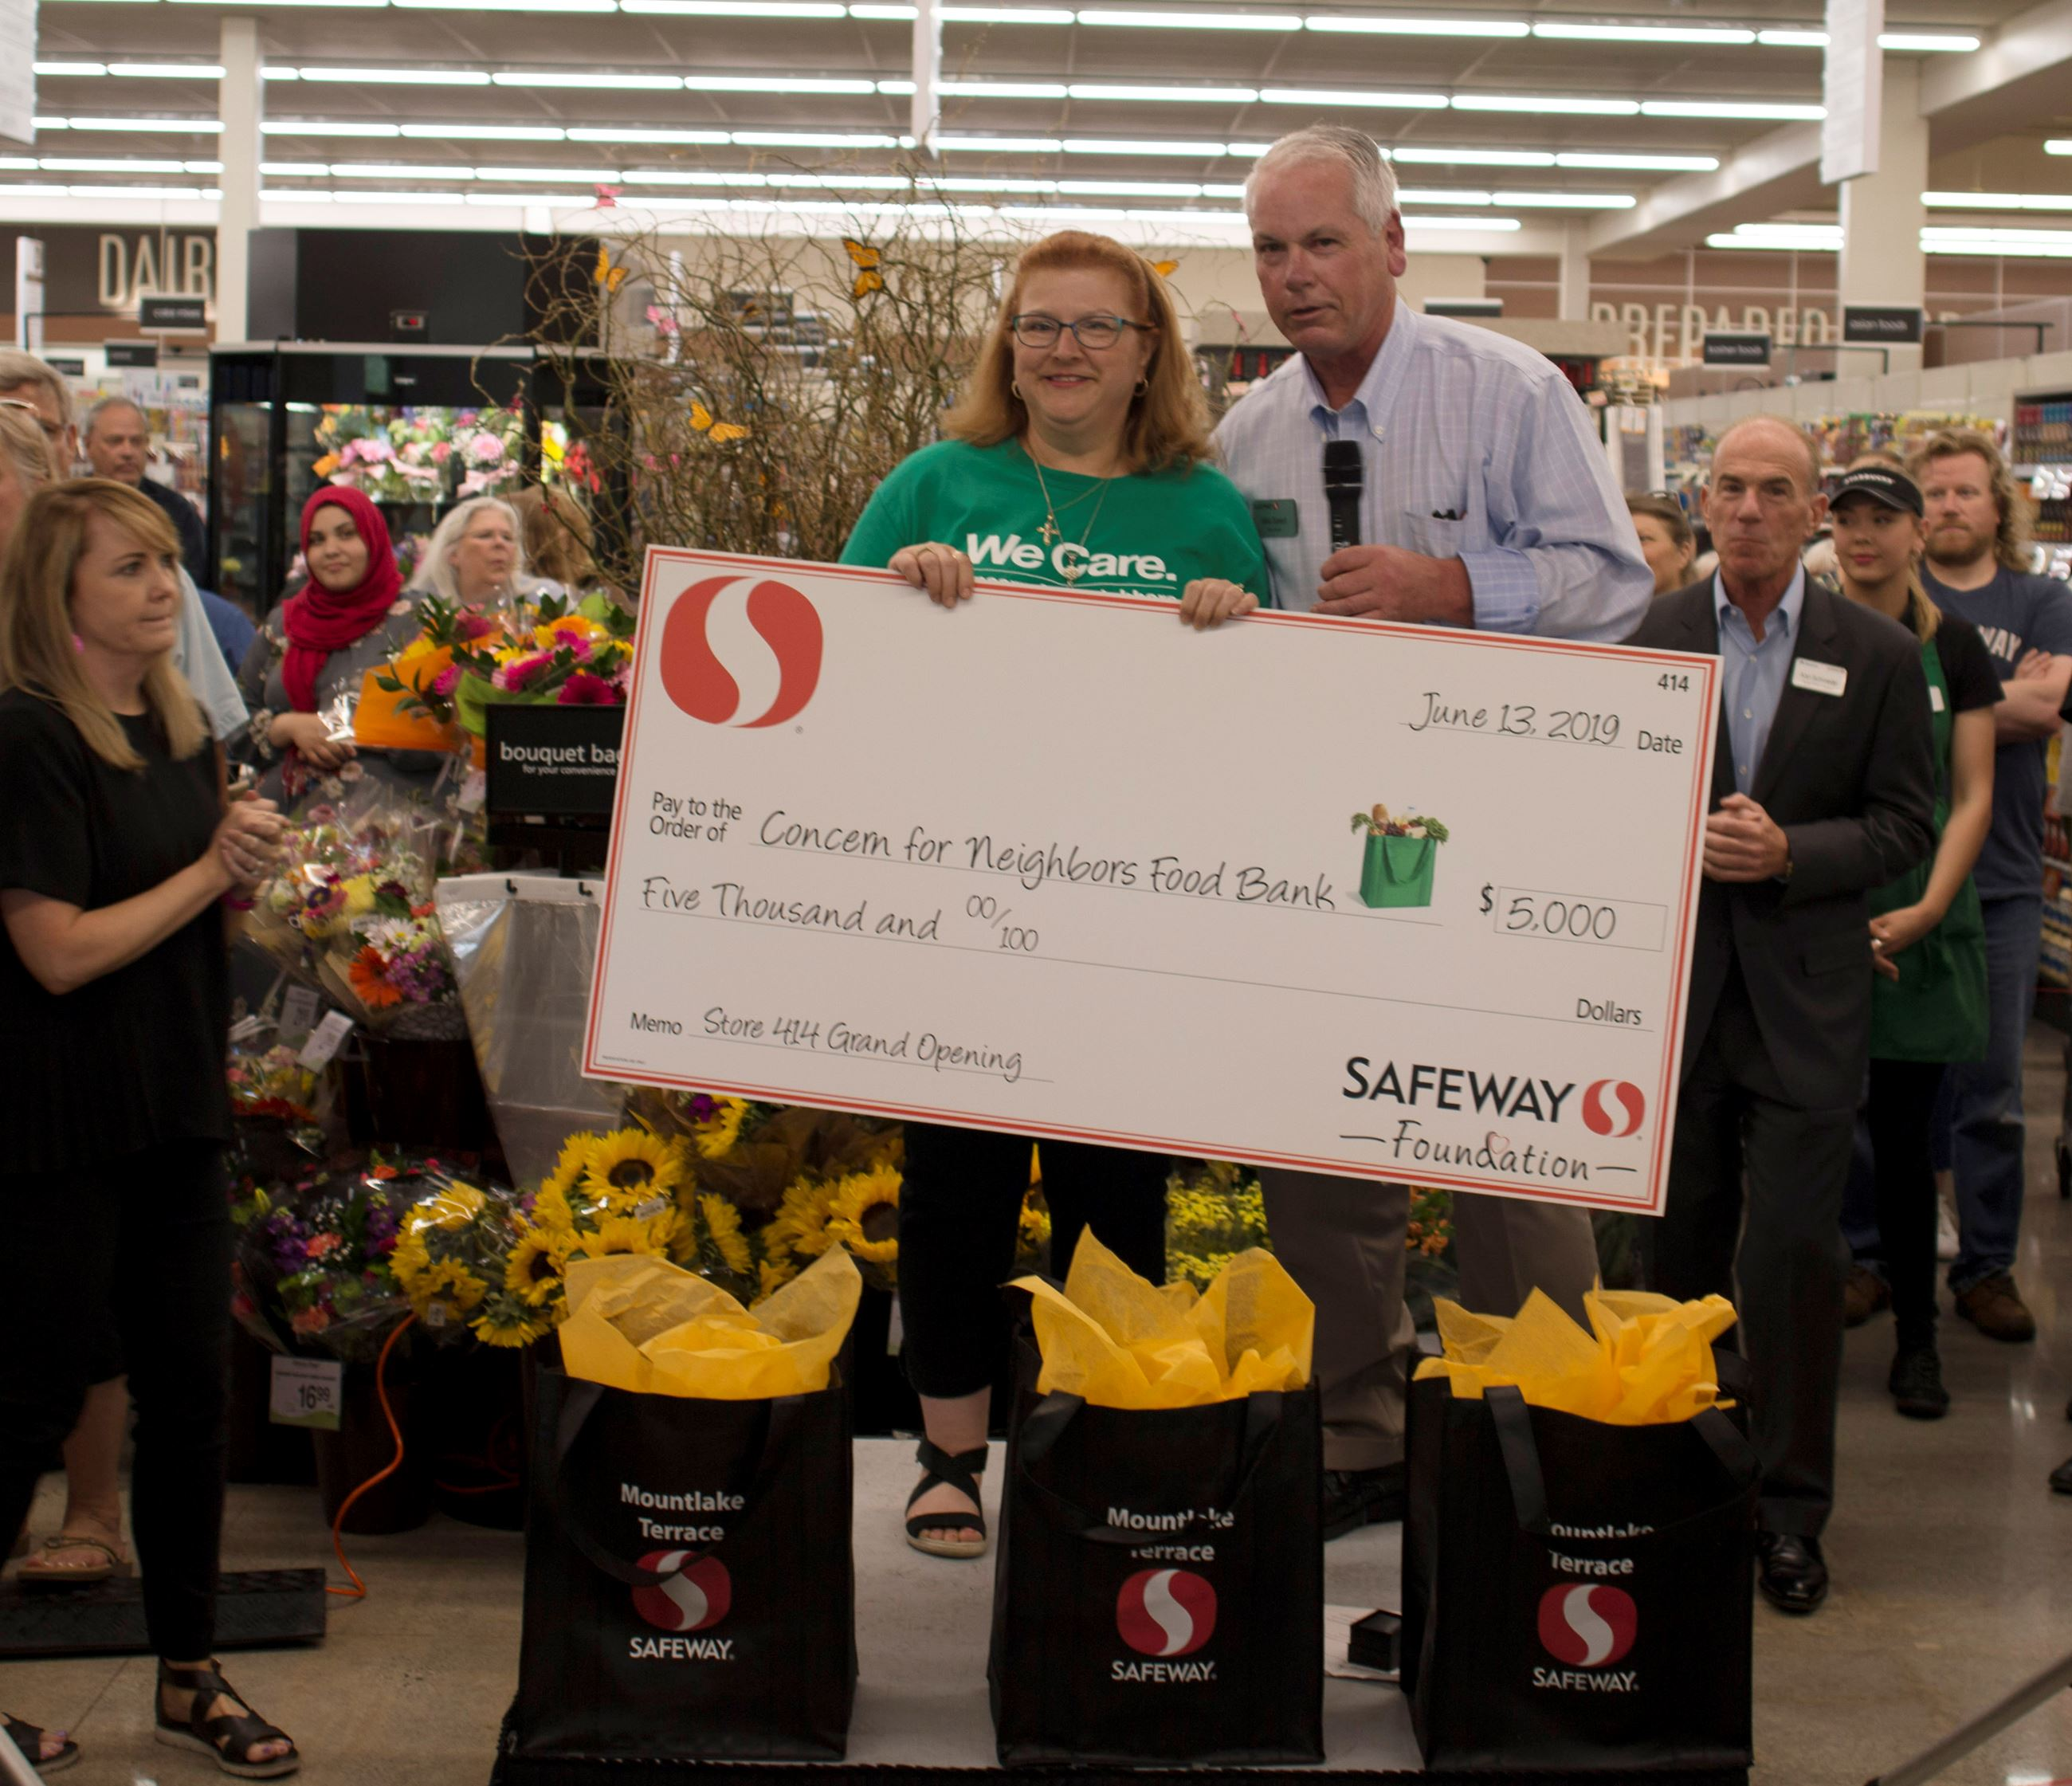 Safeway Manager Presenting Check to Food Bank Representative